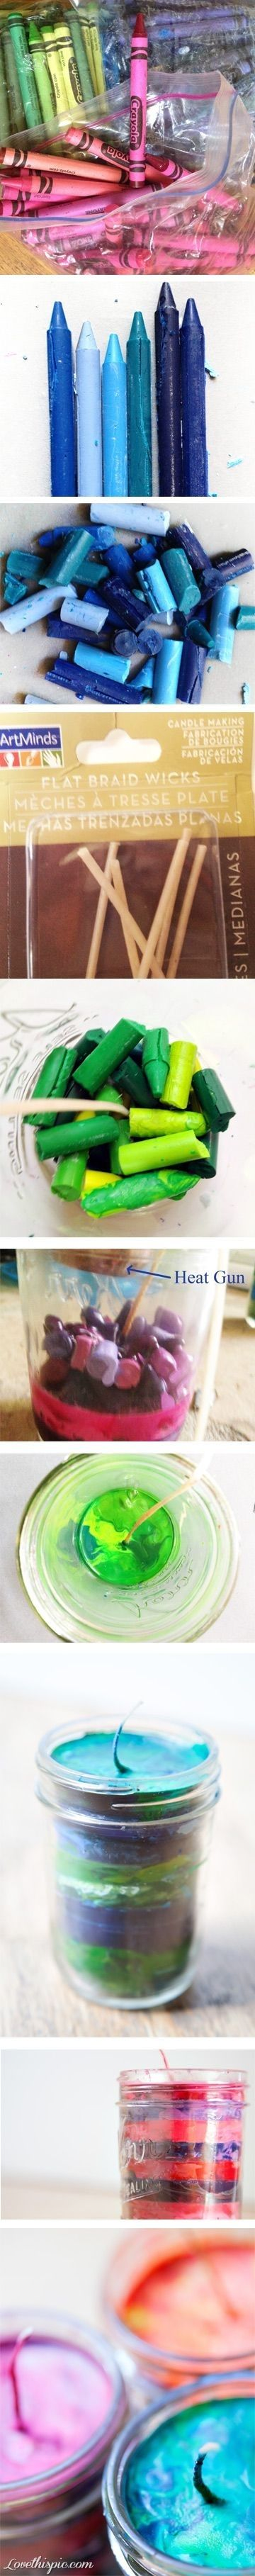 DIY crayon candles... So easy and simple to make!